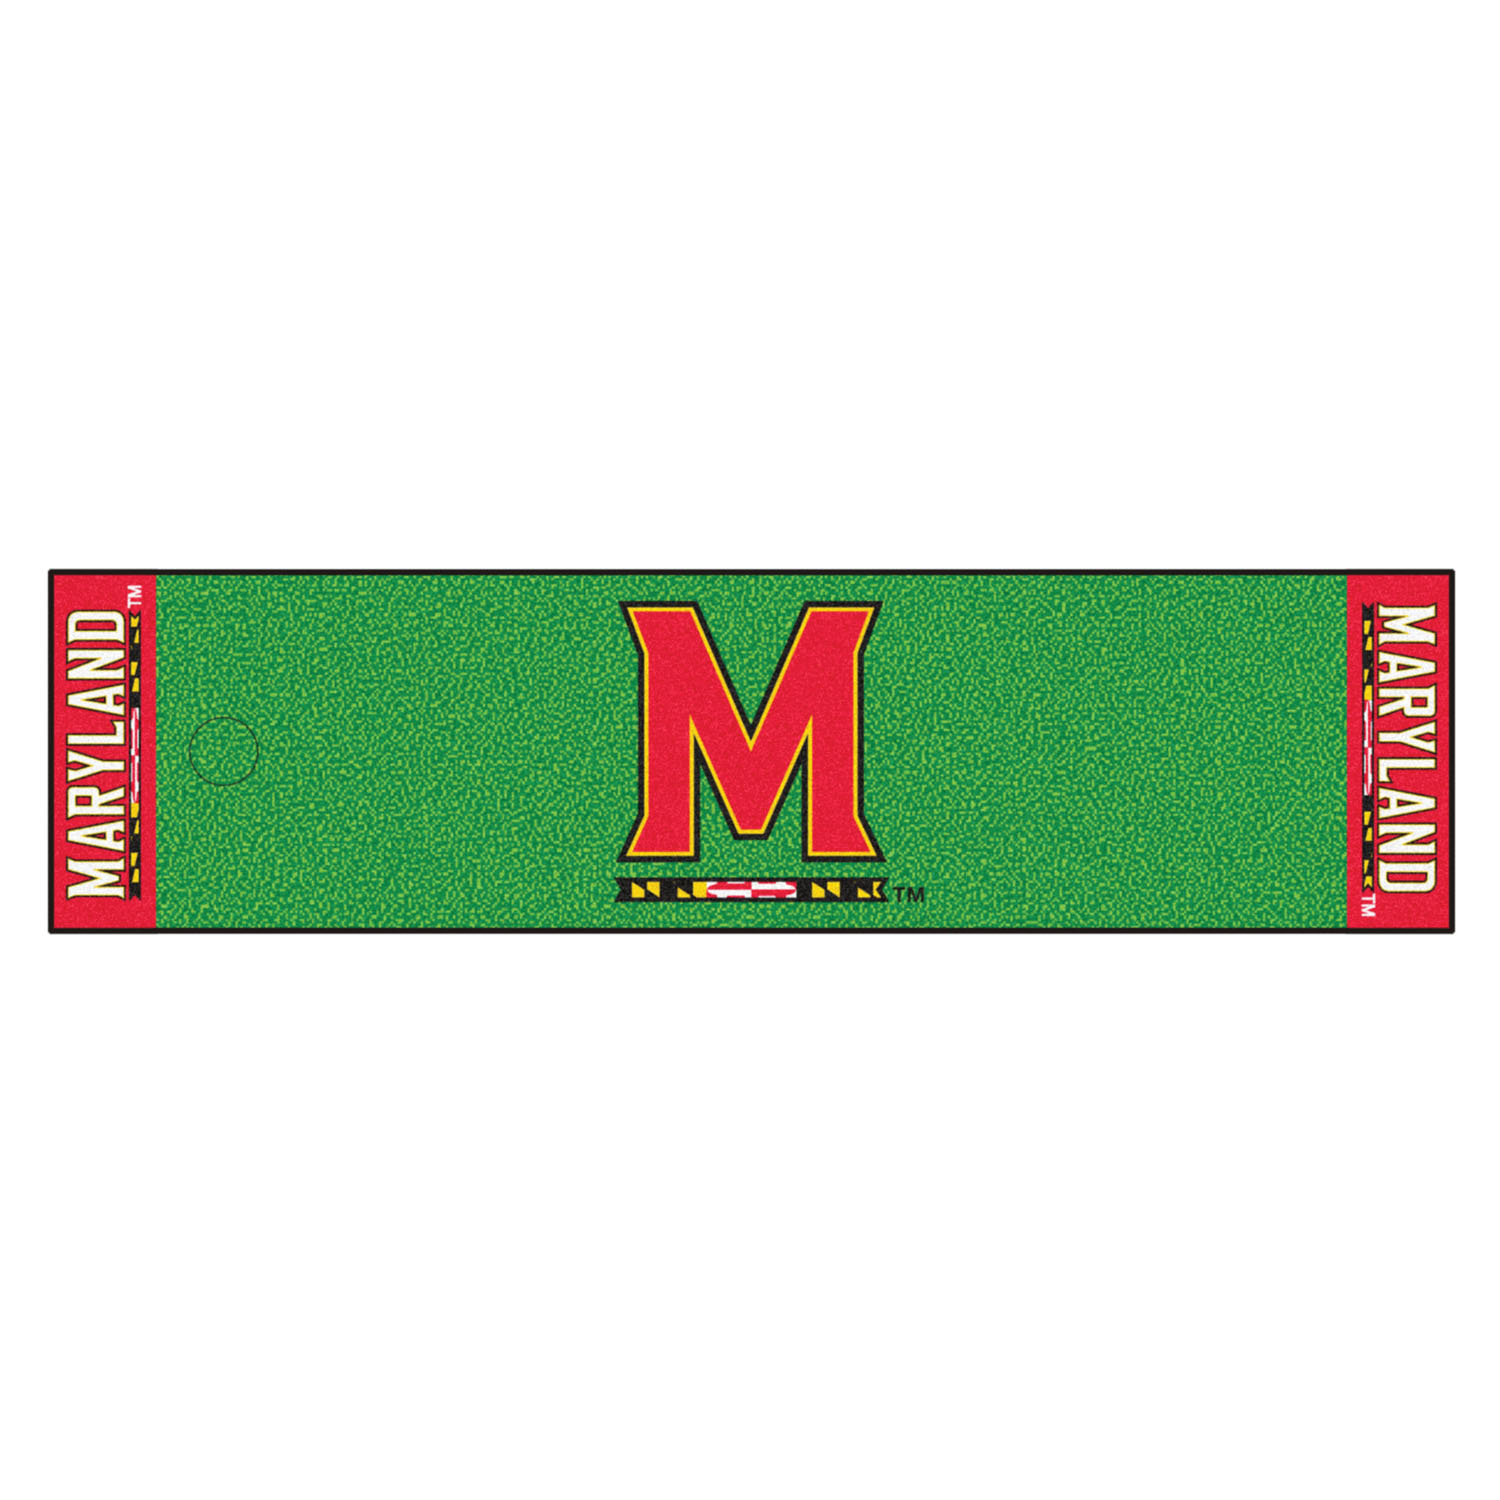 Fanmats Maryland Putting Green Runner